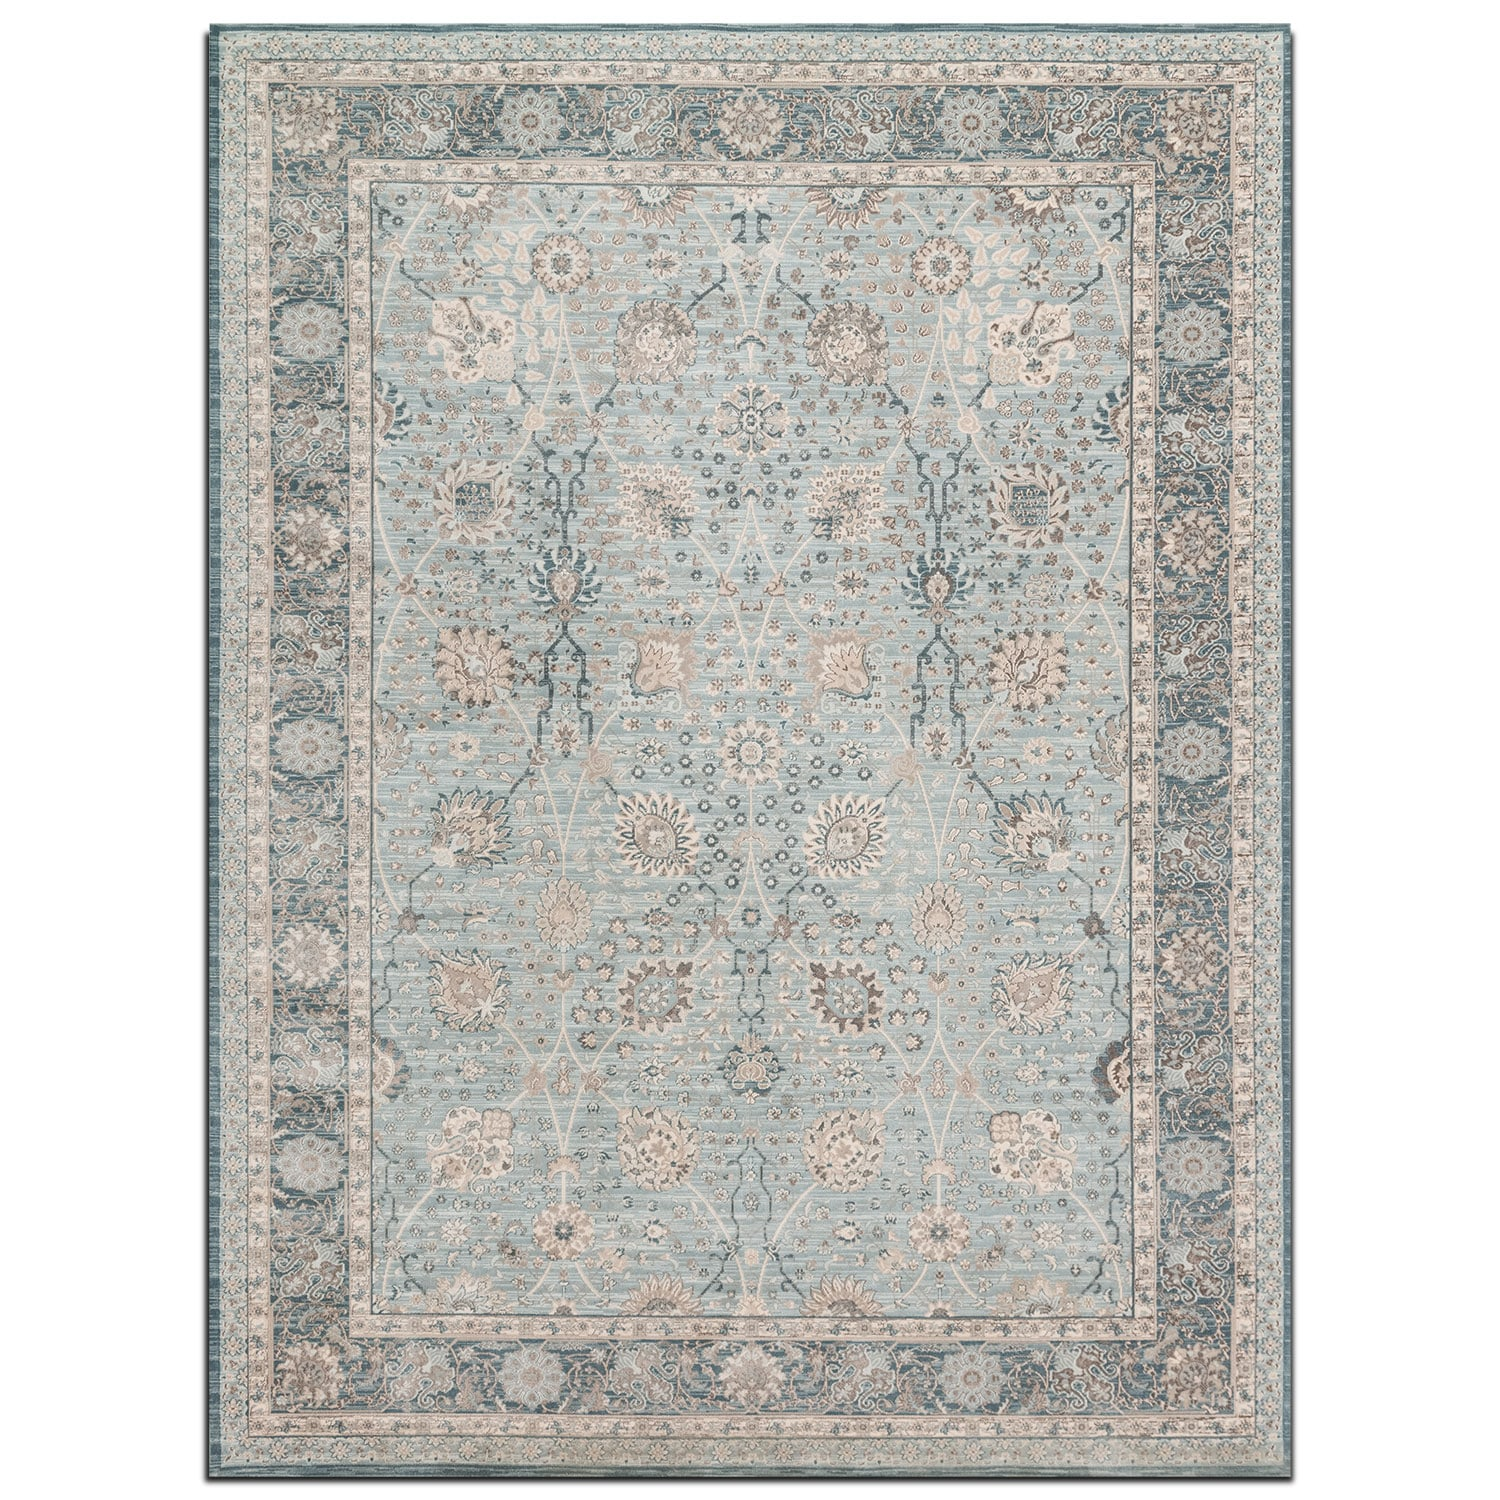 Rugs - Ella Rose 4' x 6' Rug - Light and Dark Blue